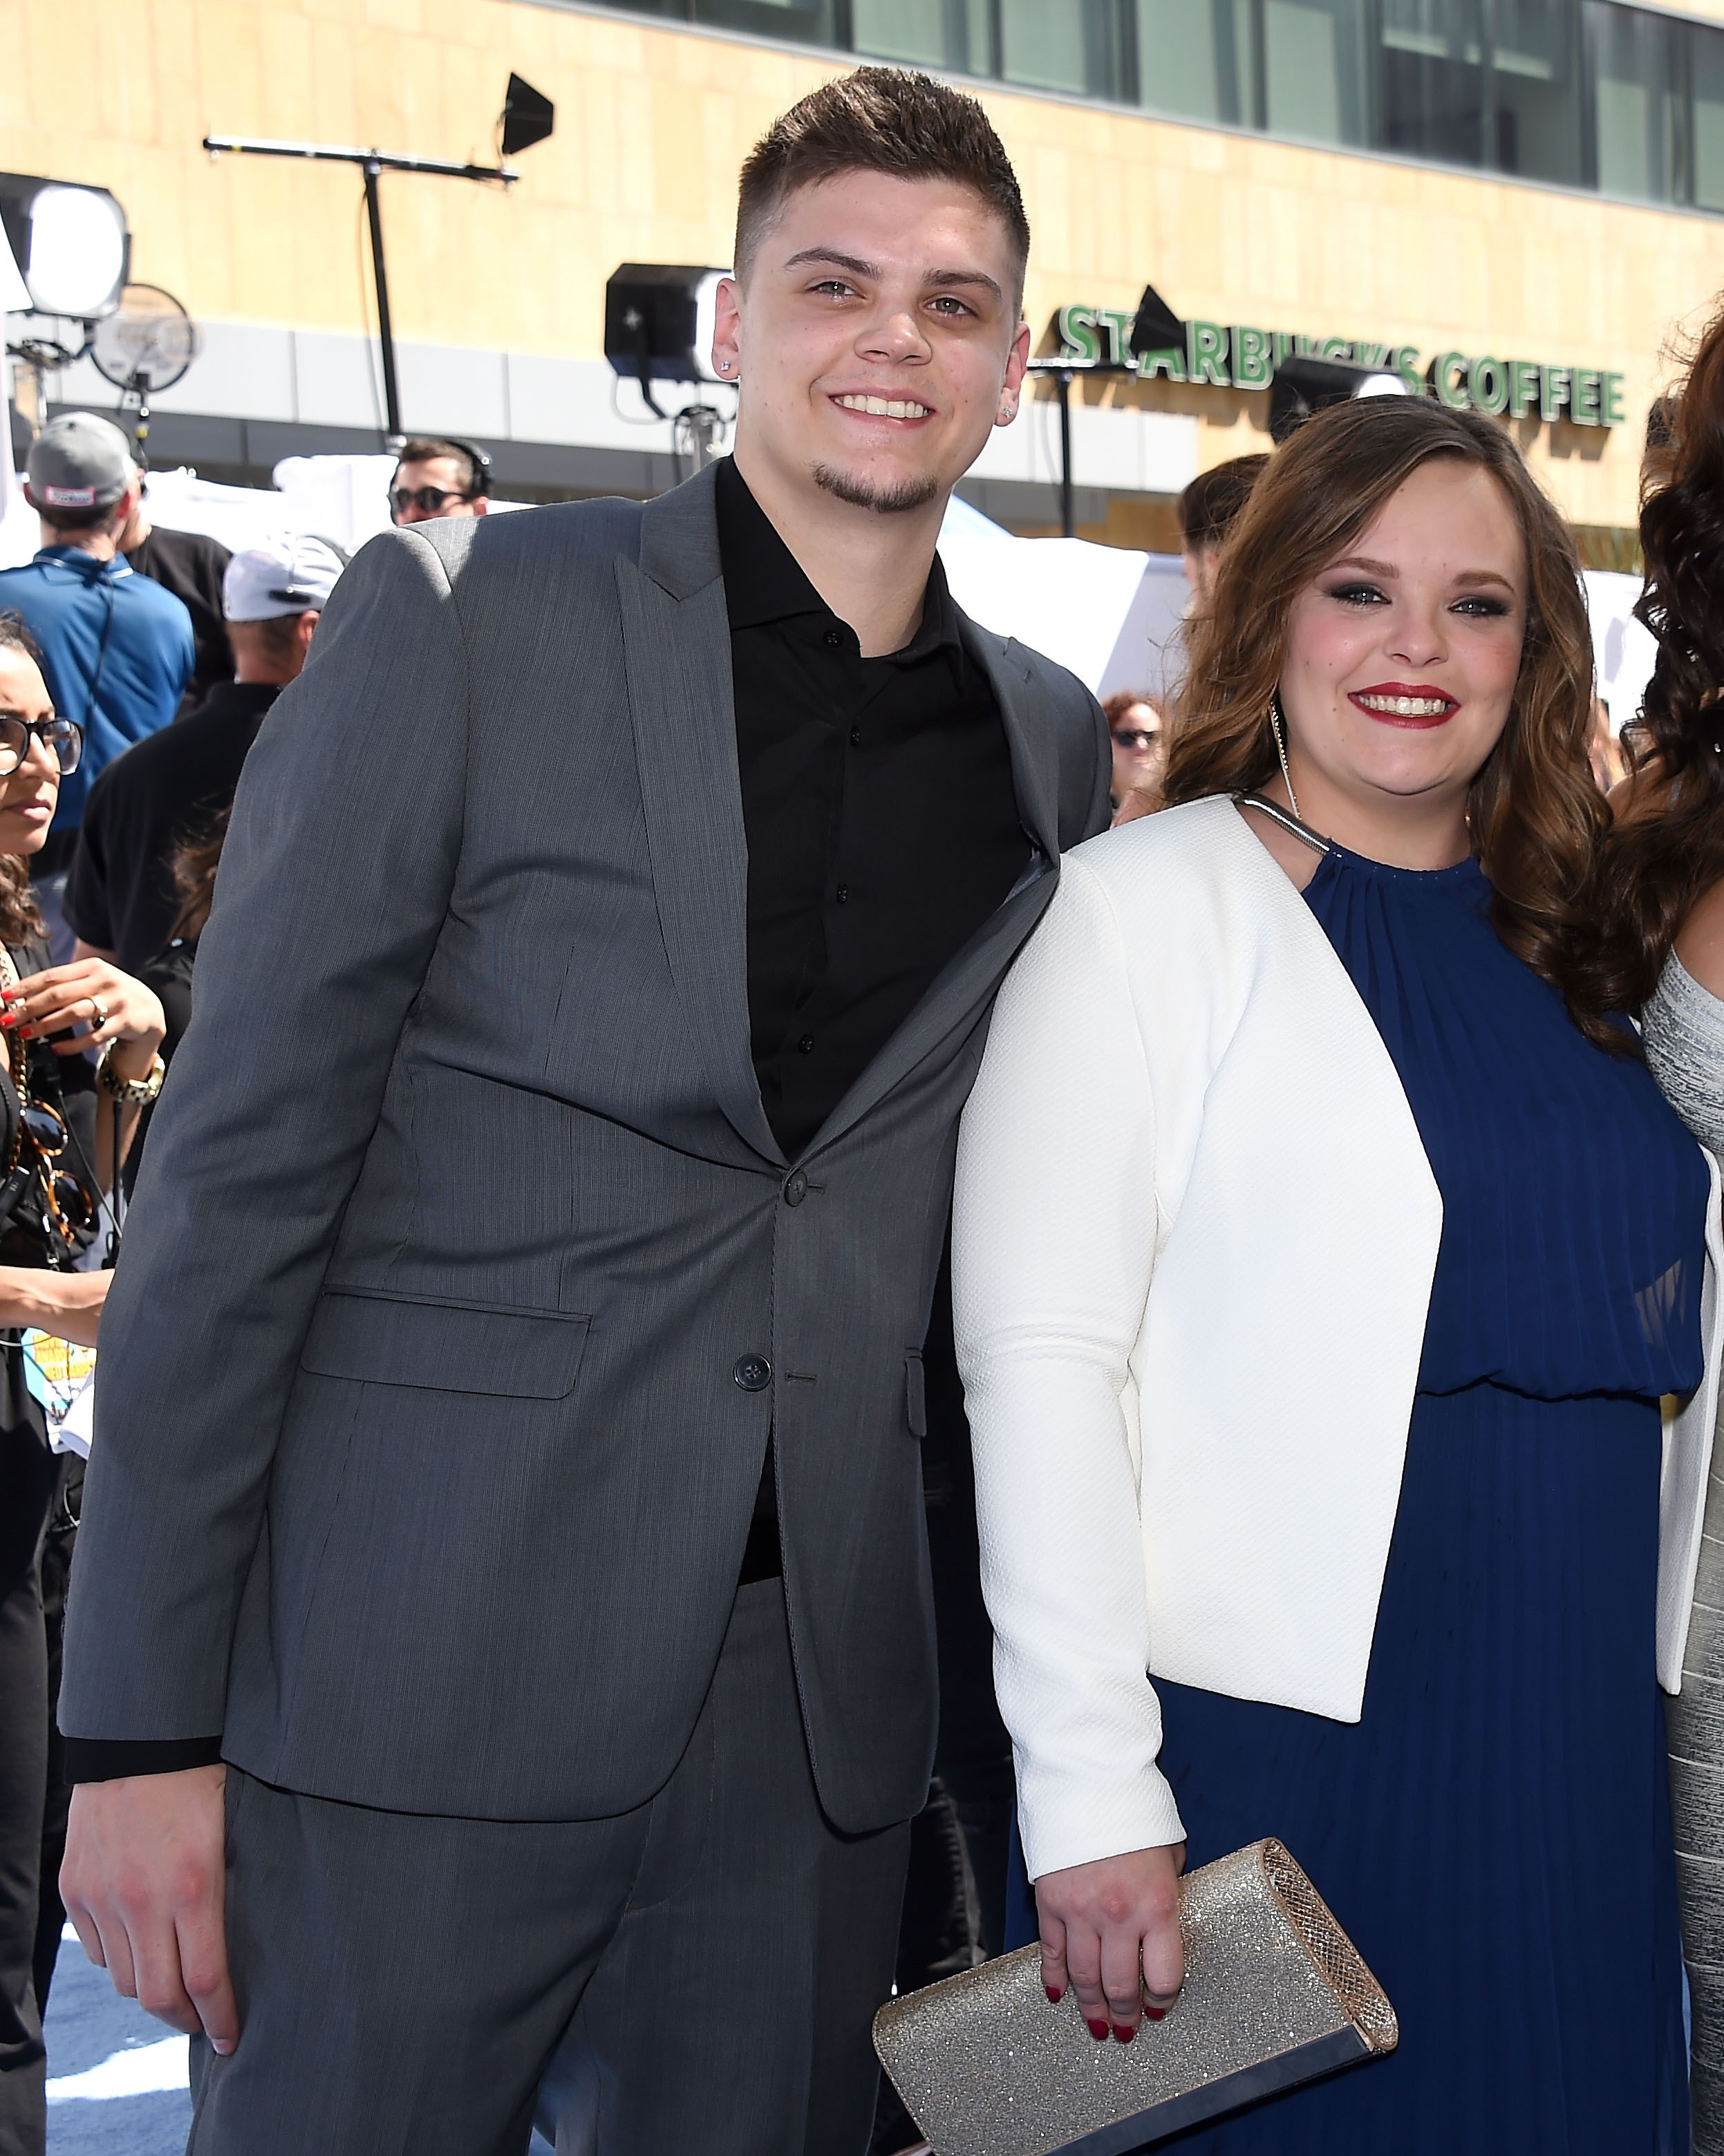 Catelynn Baltierra Opens Up About Battling 'Panic Attacks,' Suicidal Thoughts After Miscarriage